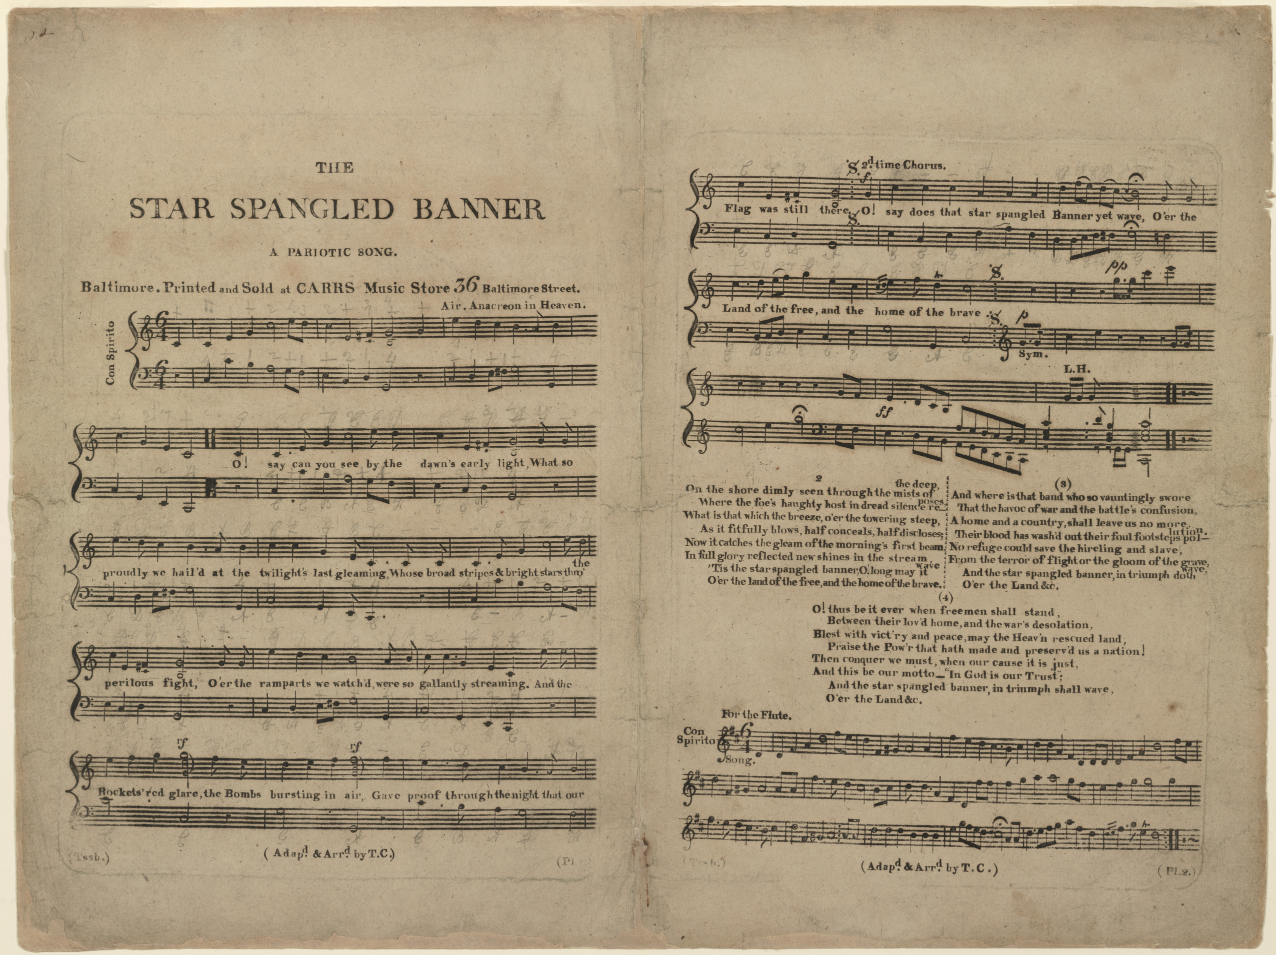 One of the 11 surviving copies of the first printed edition of The Star-Spangled Banner.